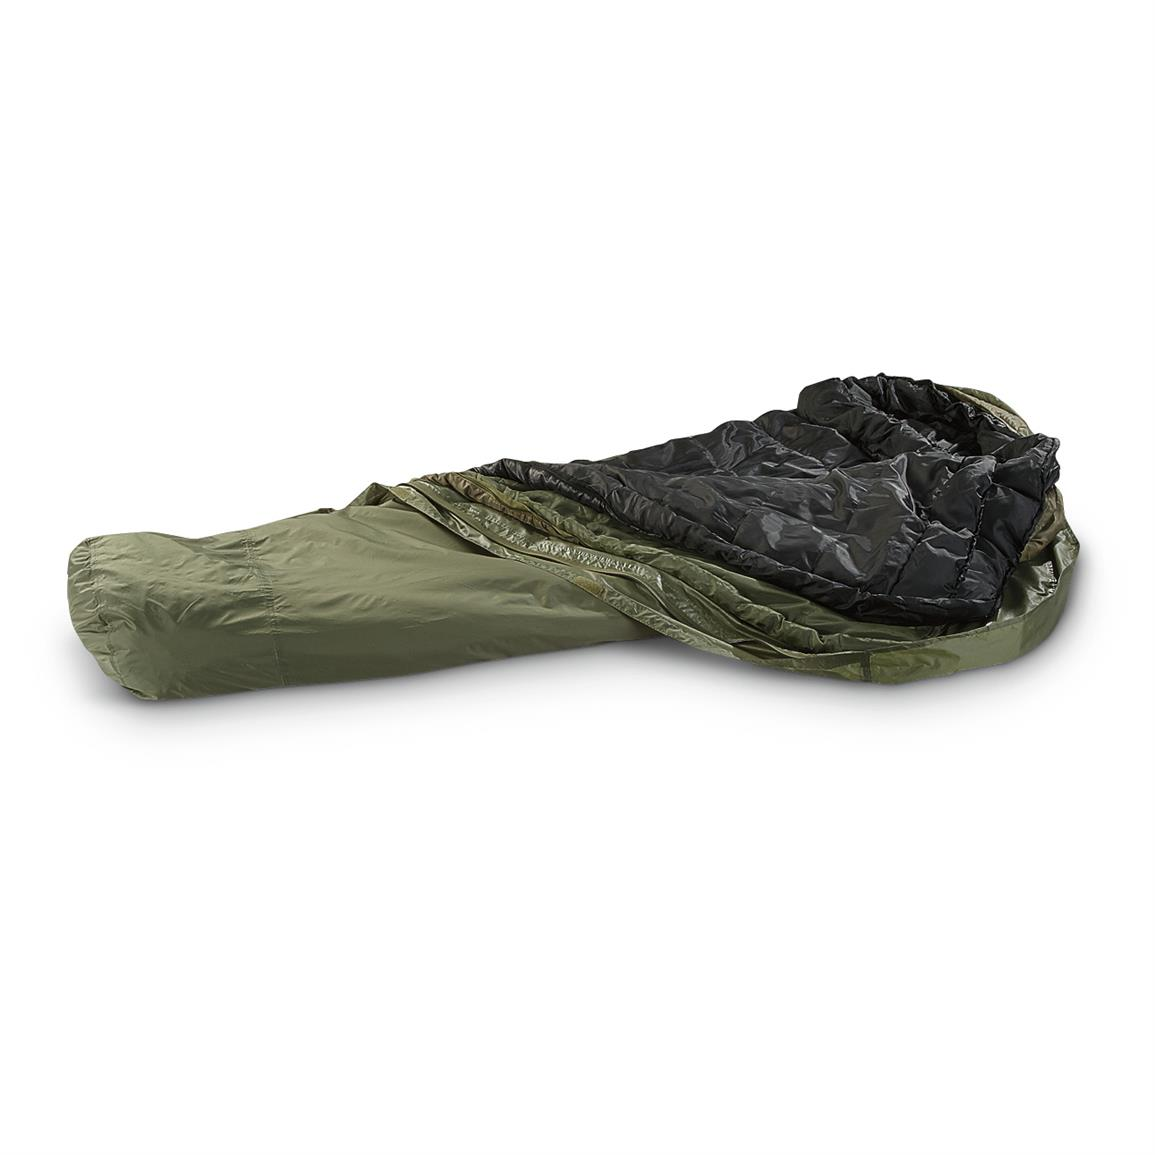 HQ ISSUE Military Style Sleep System, 3 Piece